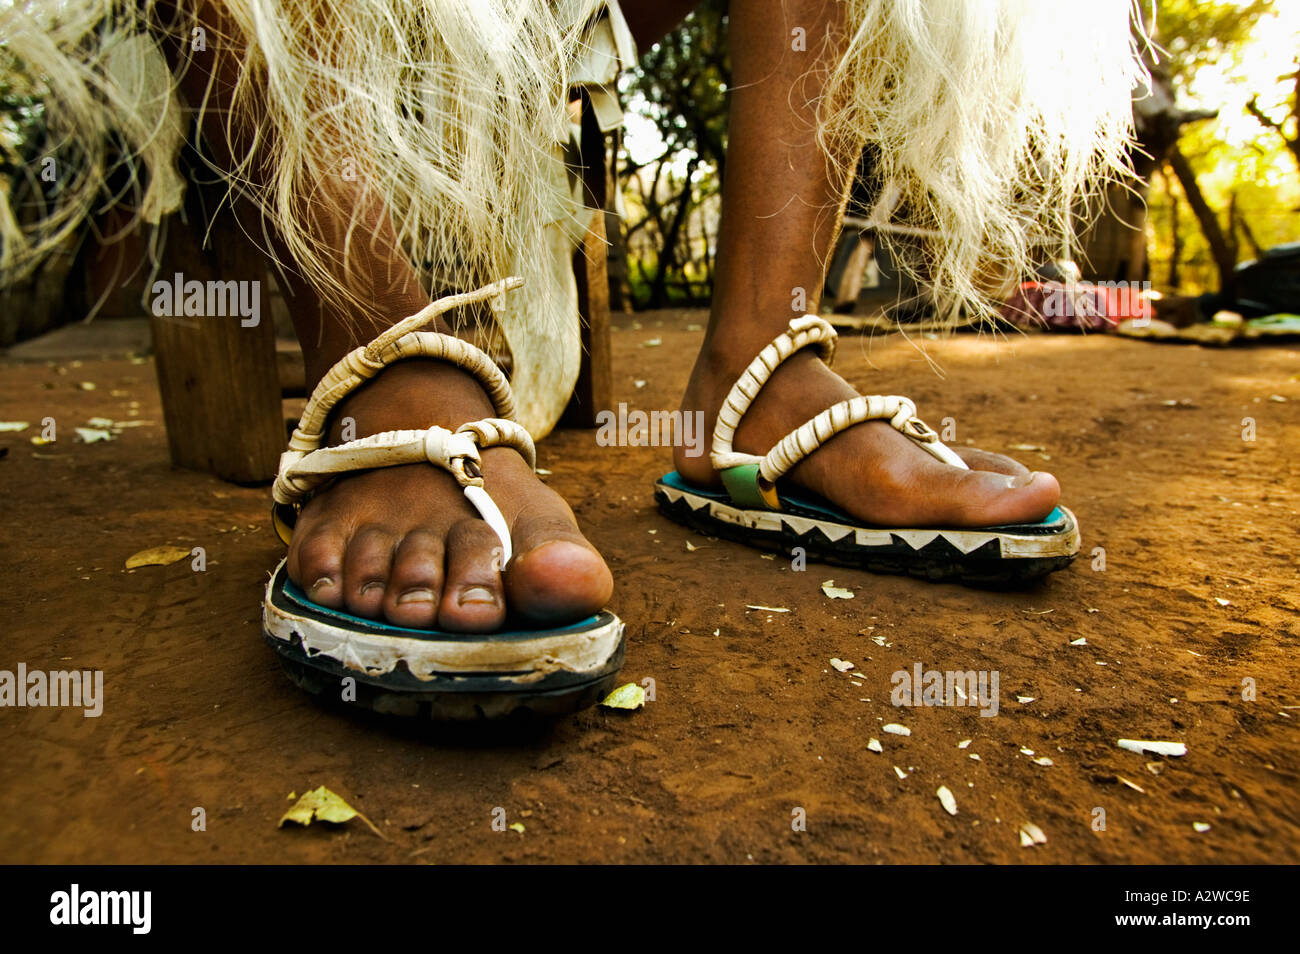 e97cafe4b People Zulu man in traditional dress with sandals made from car tyre Lesedi  Cultural Village near Johannesburg South Africa